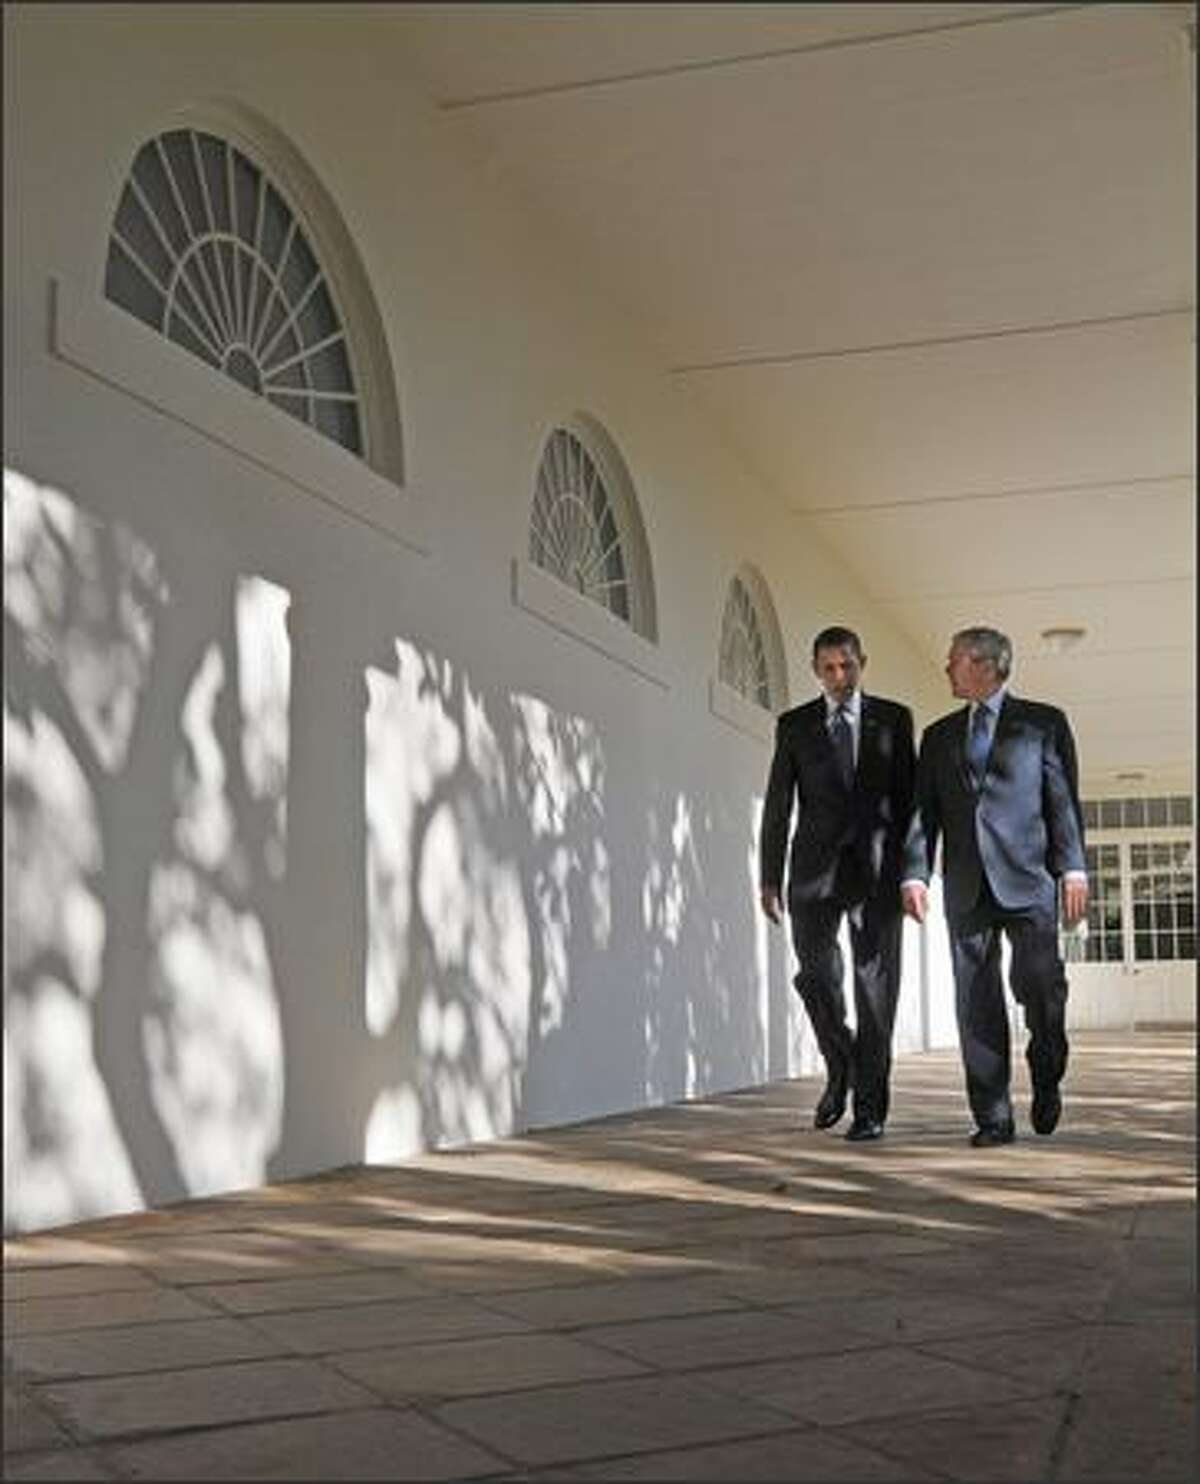 President George W. Bush and President-elect Barack Obama walk through the colonnade on Monday to the Oval Office at the White House in Washington, D.C.